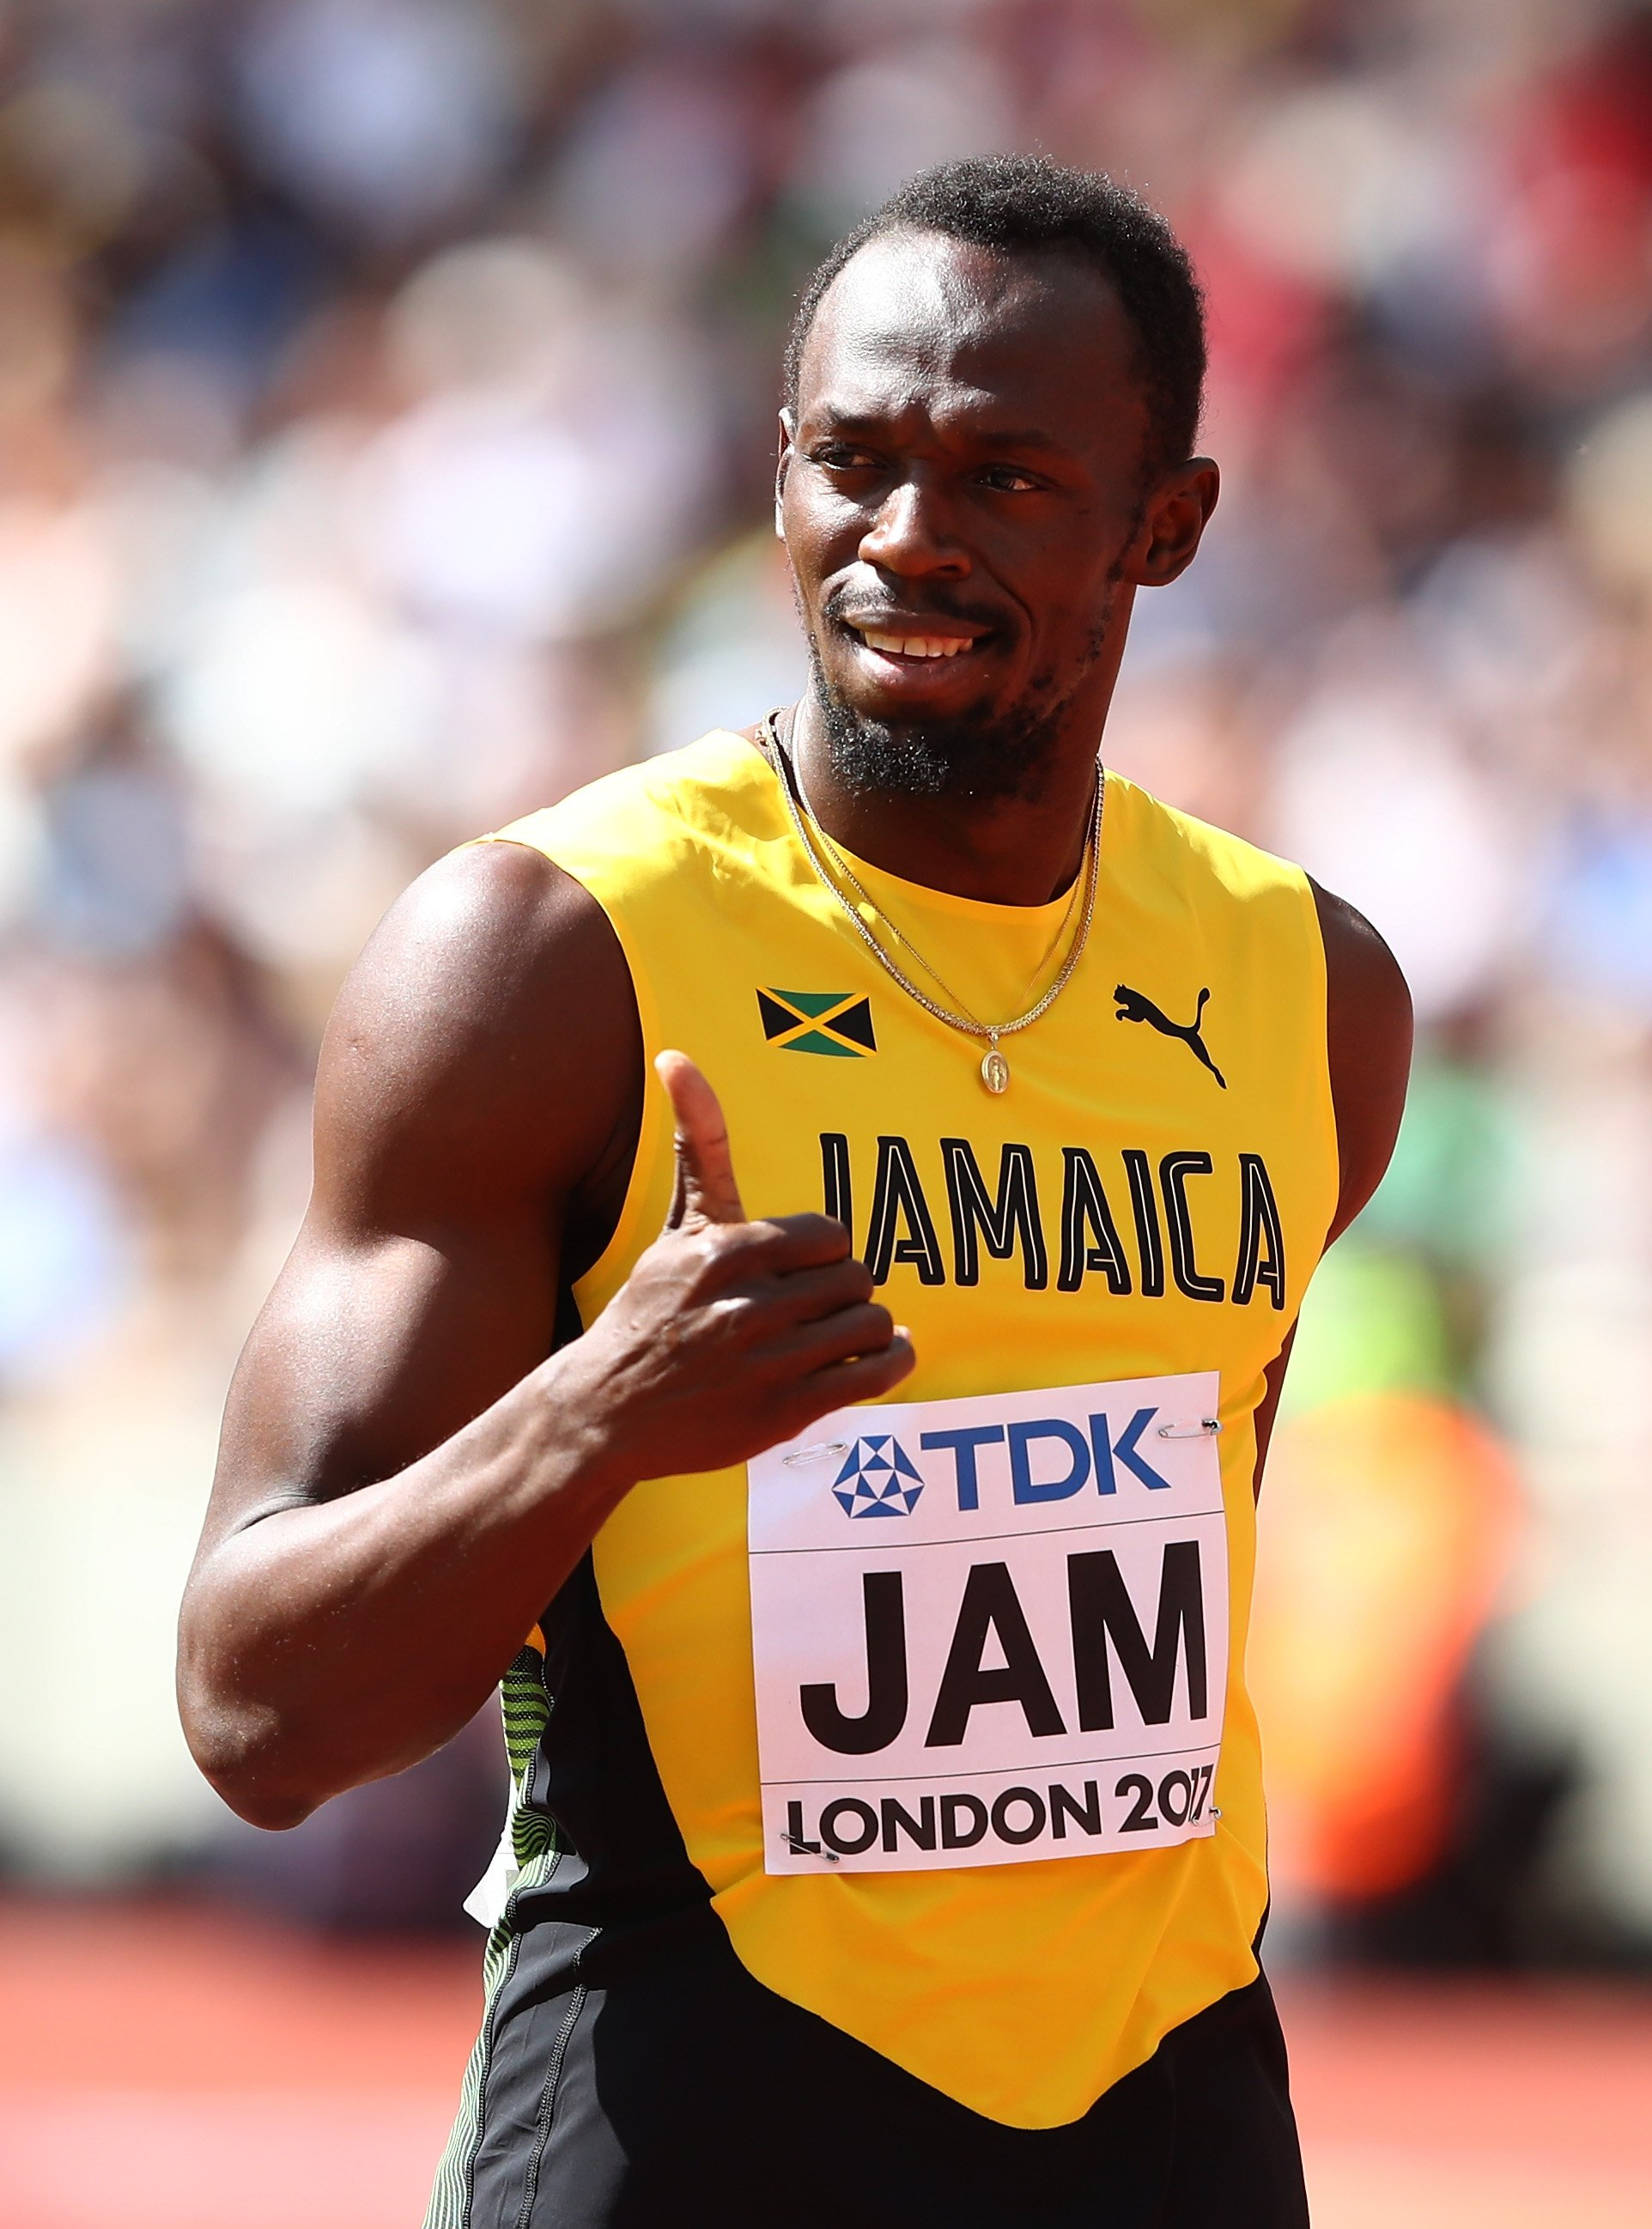 Usain Bolt at the 16th IAAF World Athletics Championships on Aug. 12, 2017 in London, United Kingdom | Photo: Getty Images